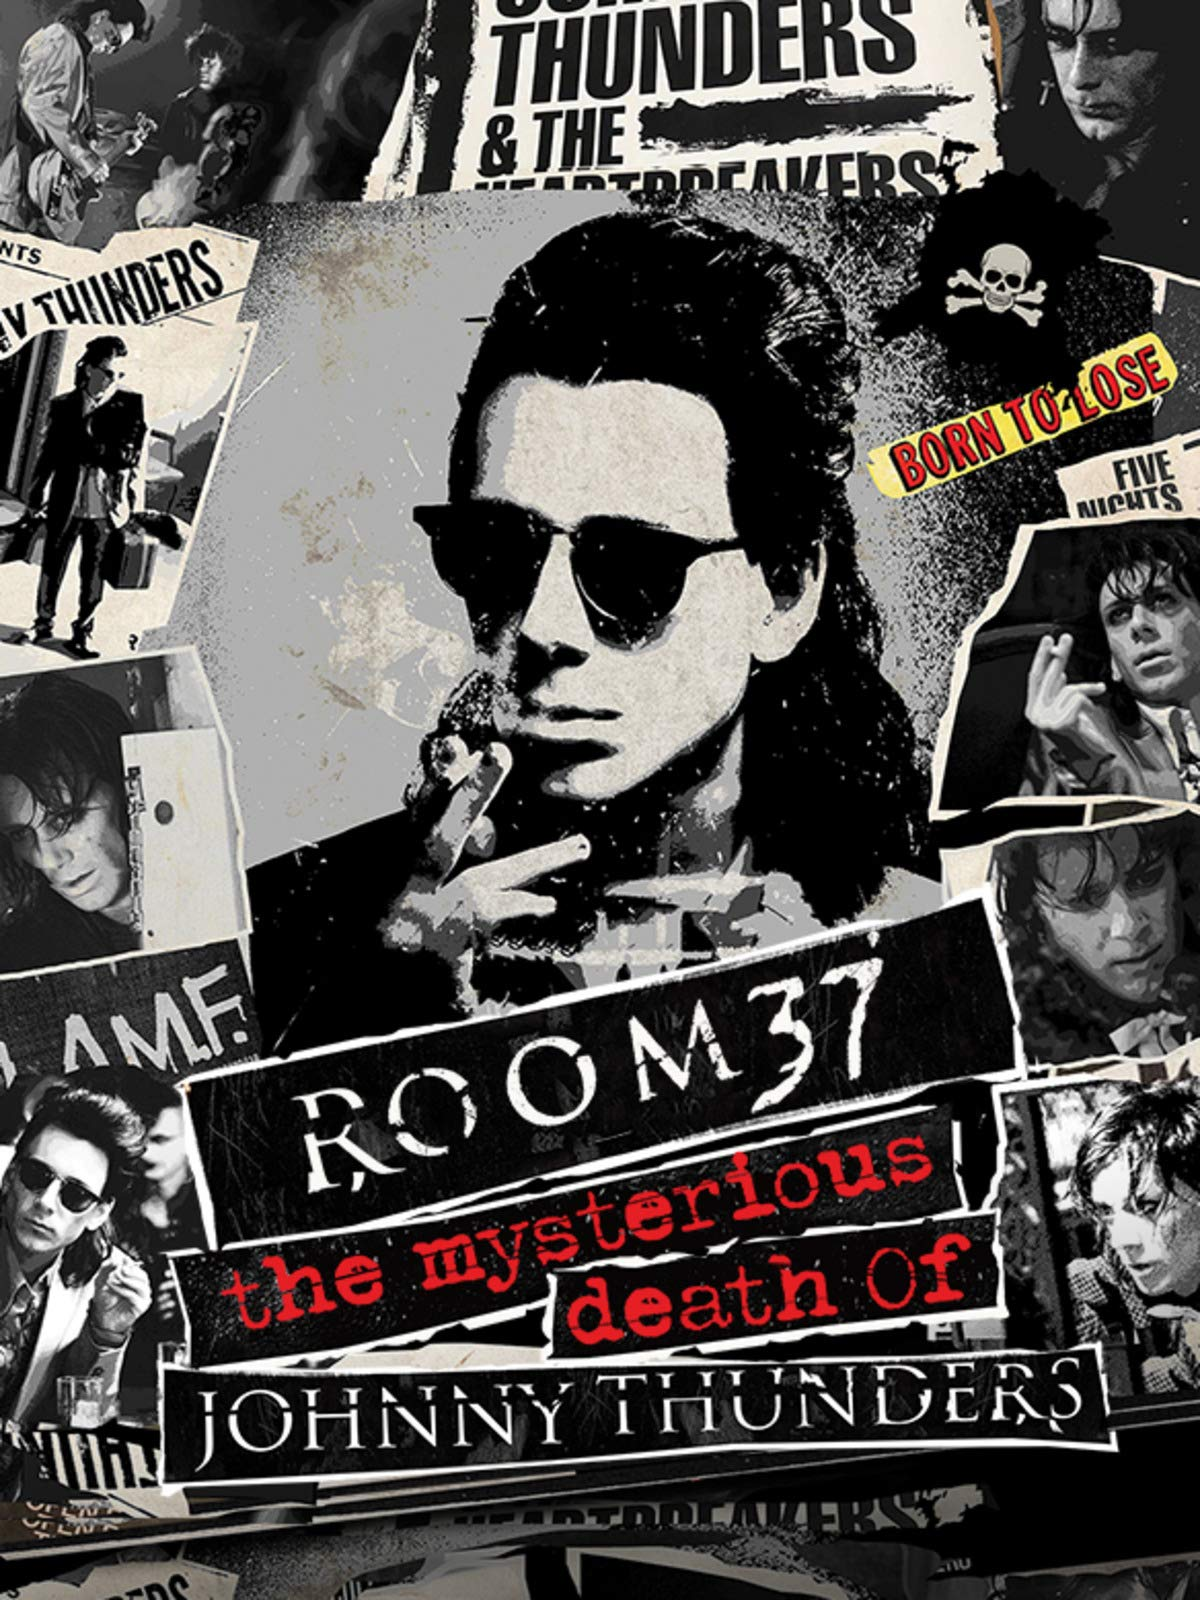 Room 37 - The Mysterious Death of Johnny Thunders on Amazon Prime Video UK